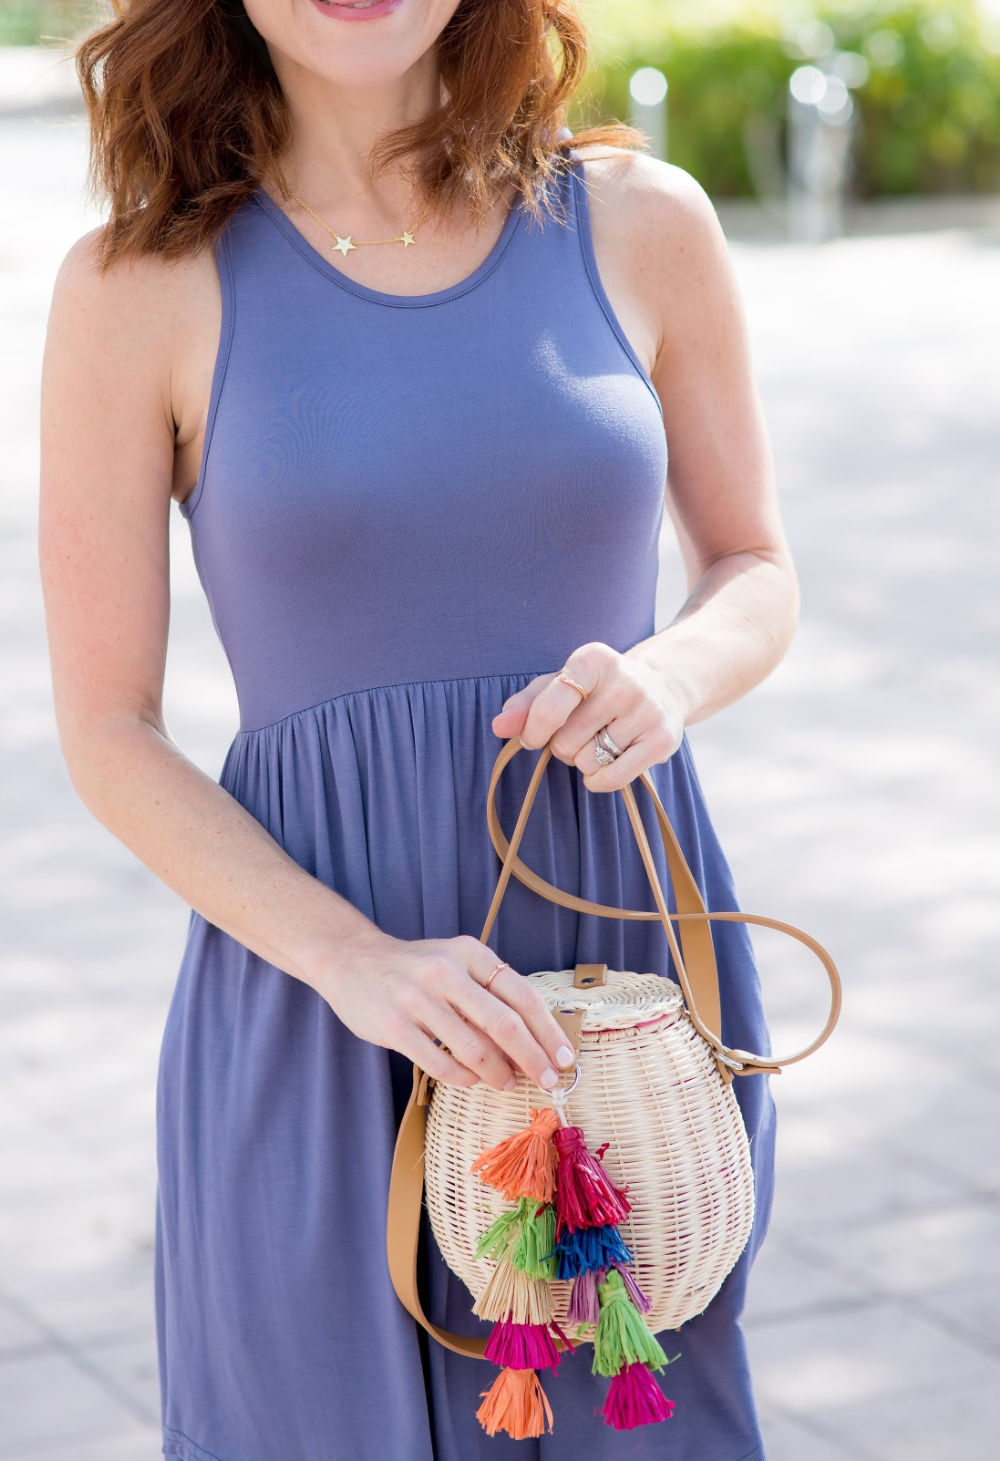 Really easy spring outfit formula you can replicate